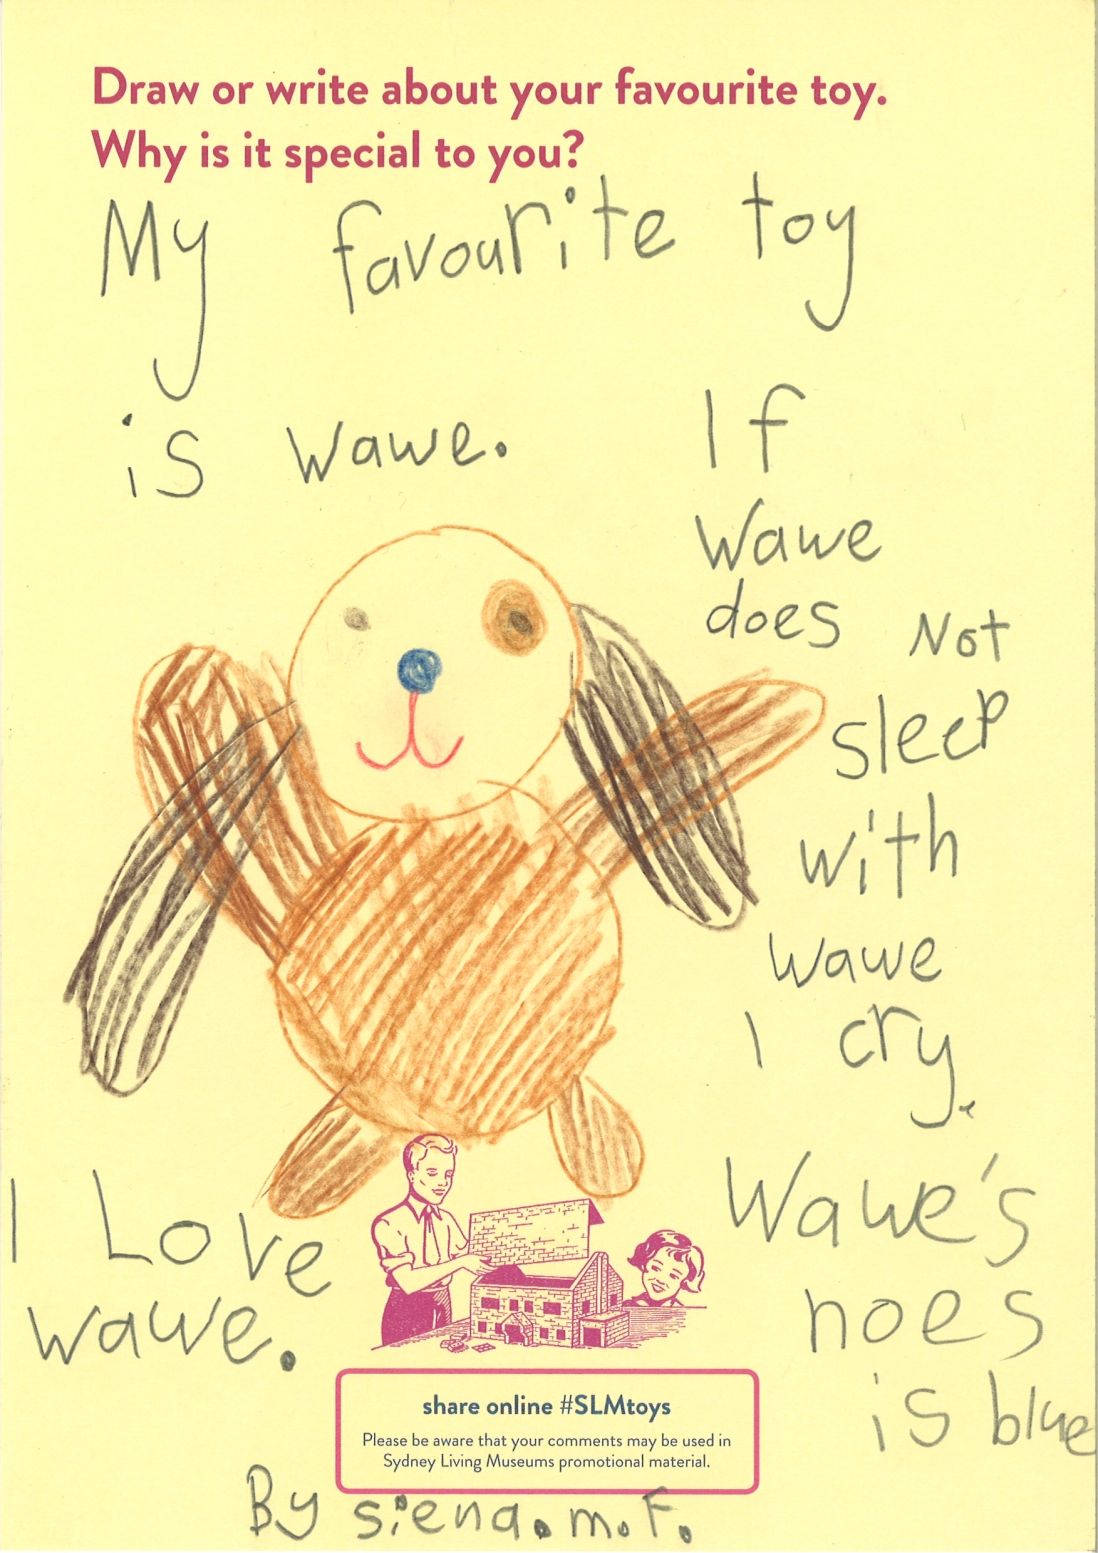 A child describes her stuffed toy dog with a blue nose who she needs to sleep